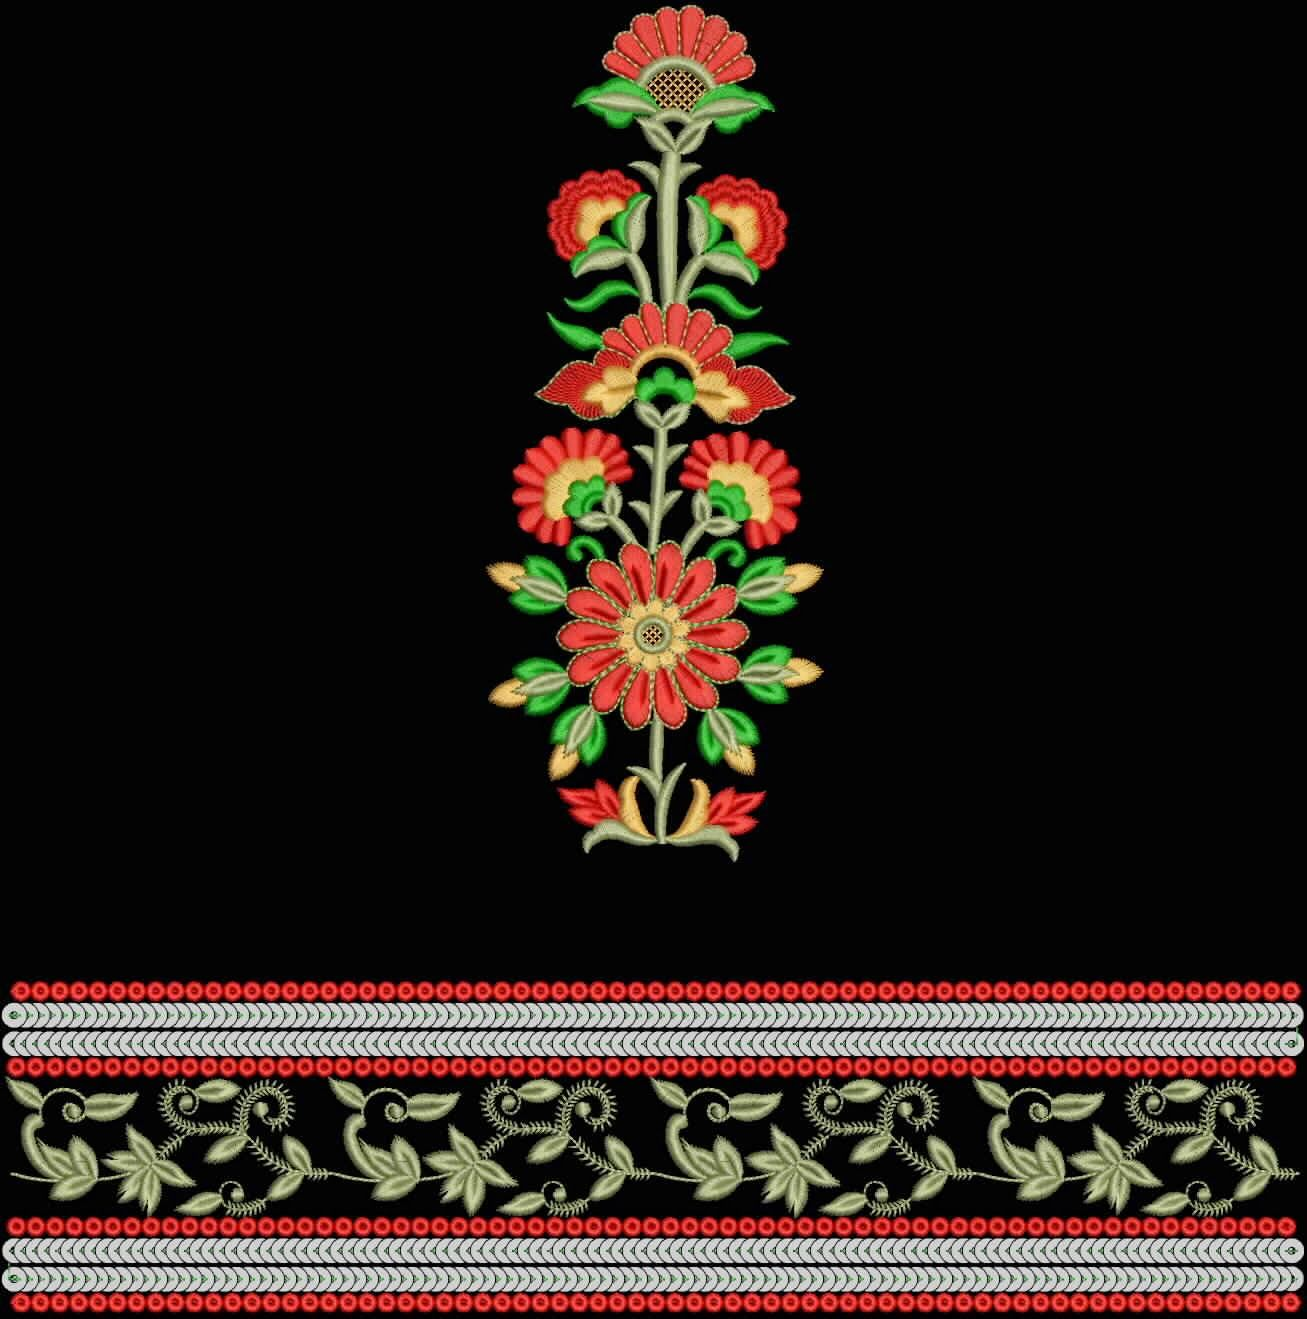 Embroidery designs embroidery bunches designs free download embroidery designs embroidery bunches designs free download bankloansurffo Images